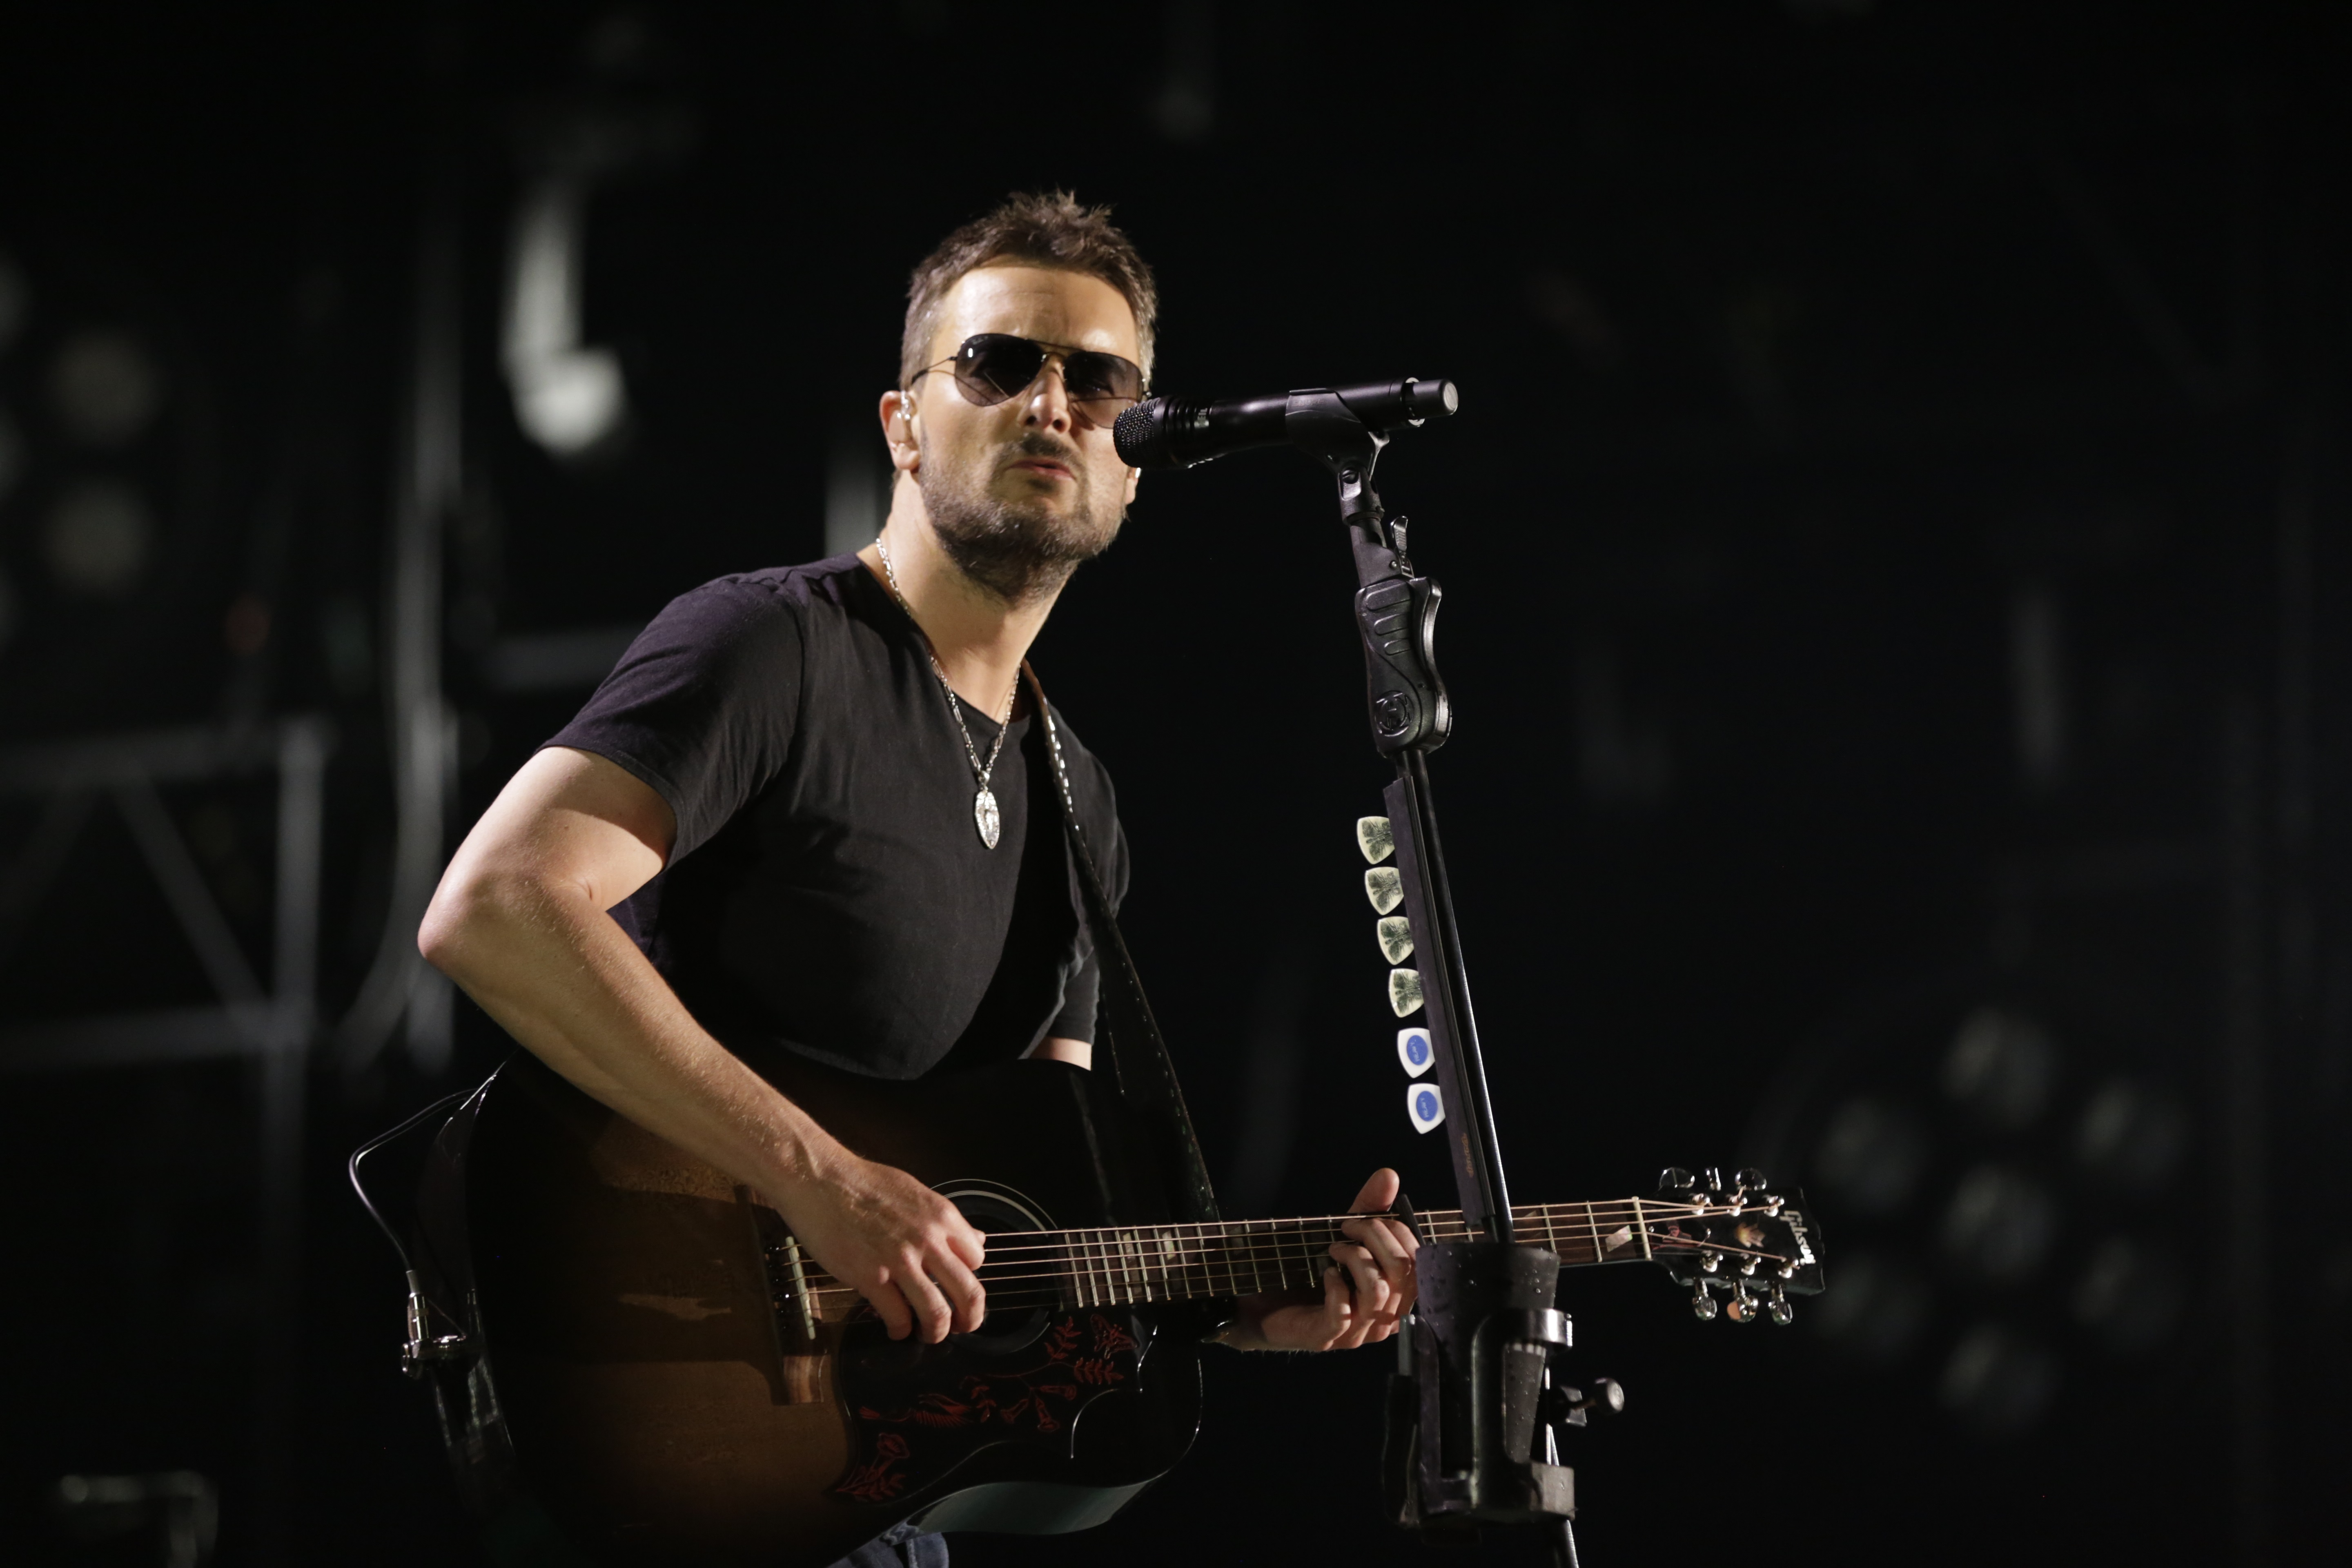 eric church Find great deals on ebay for eric church shirt in t-shirts and men's clothing shop with confidence.